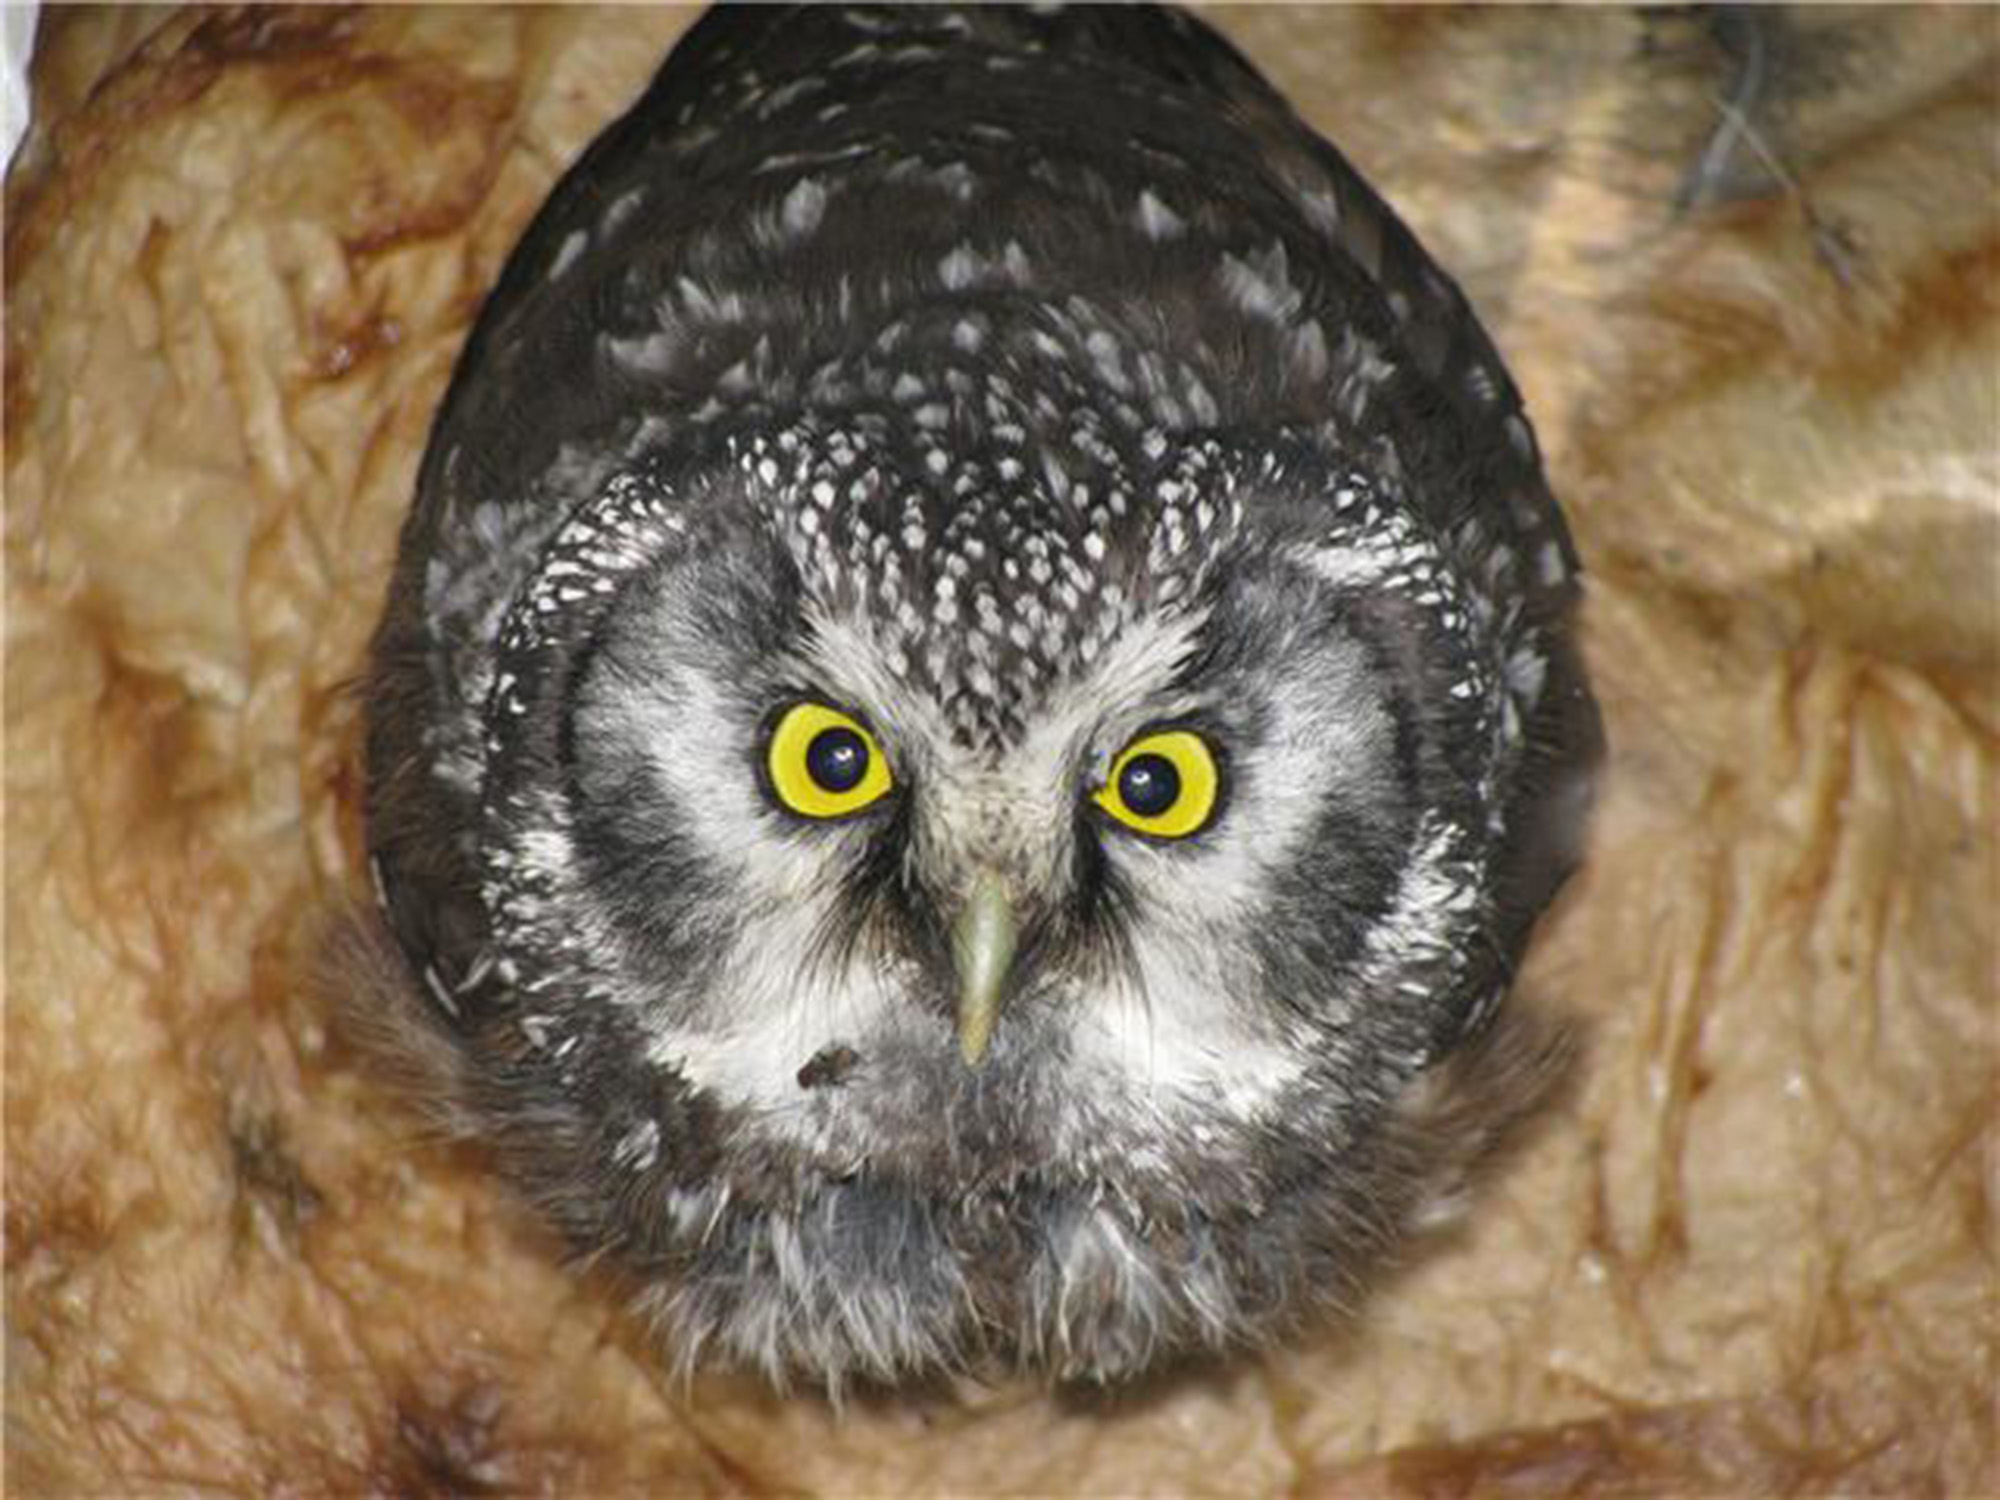 An owl is trapped in a vault toilet (portable toilet) ventilation pipe